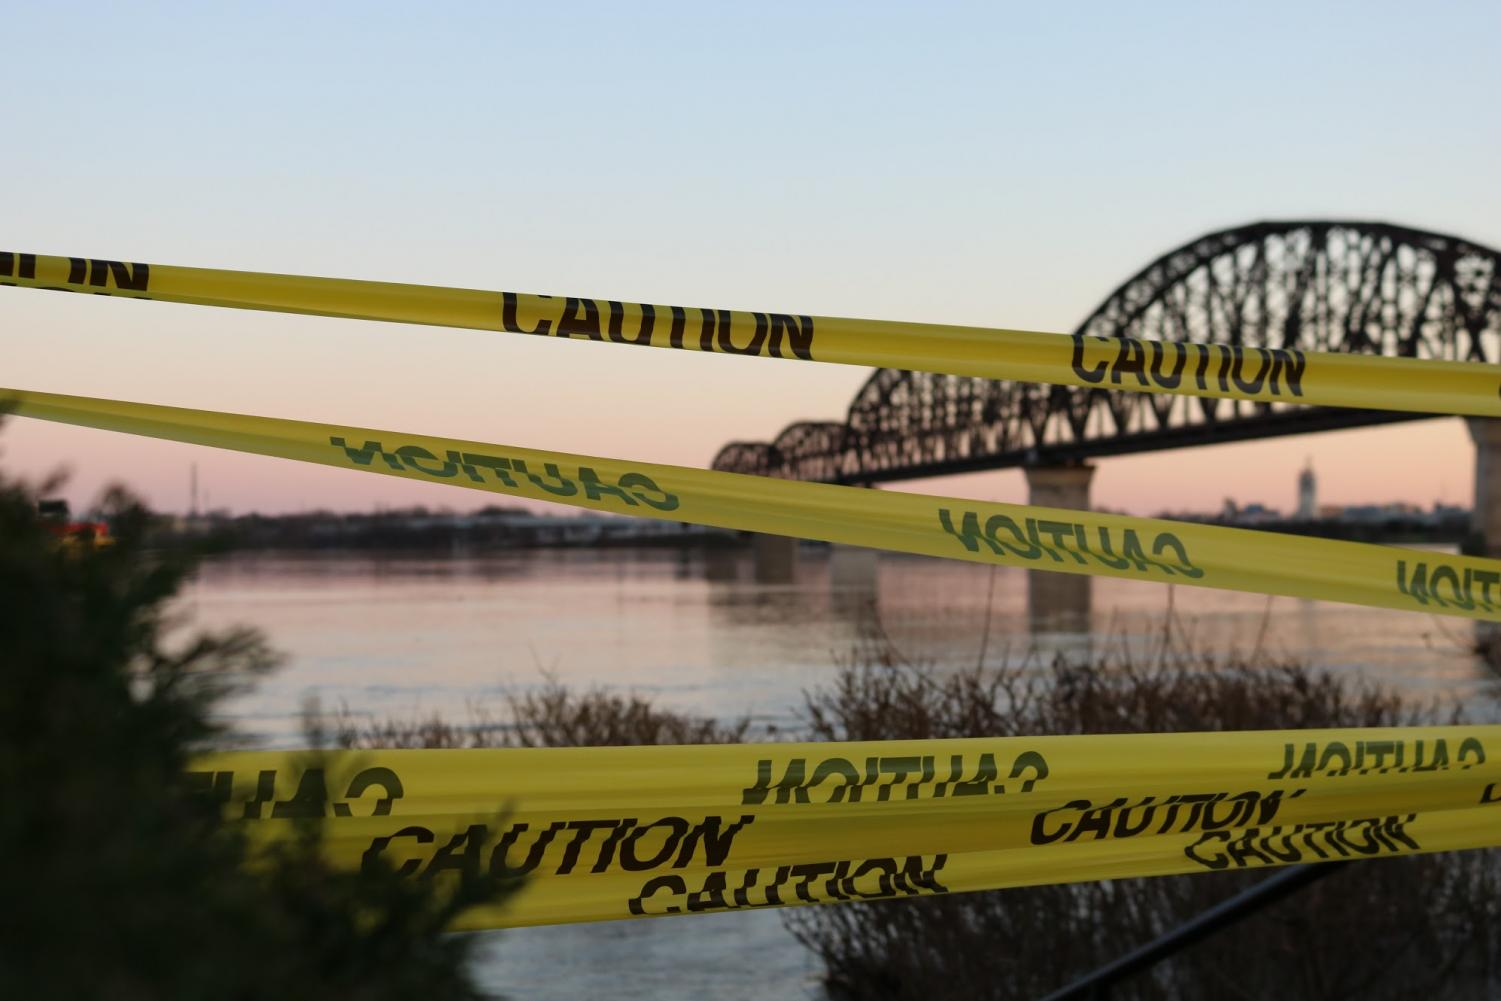 Hazard tape is put up in an effort to keep curious onlookers at bay and out of harms way.